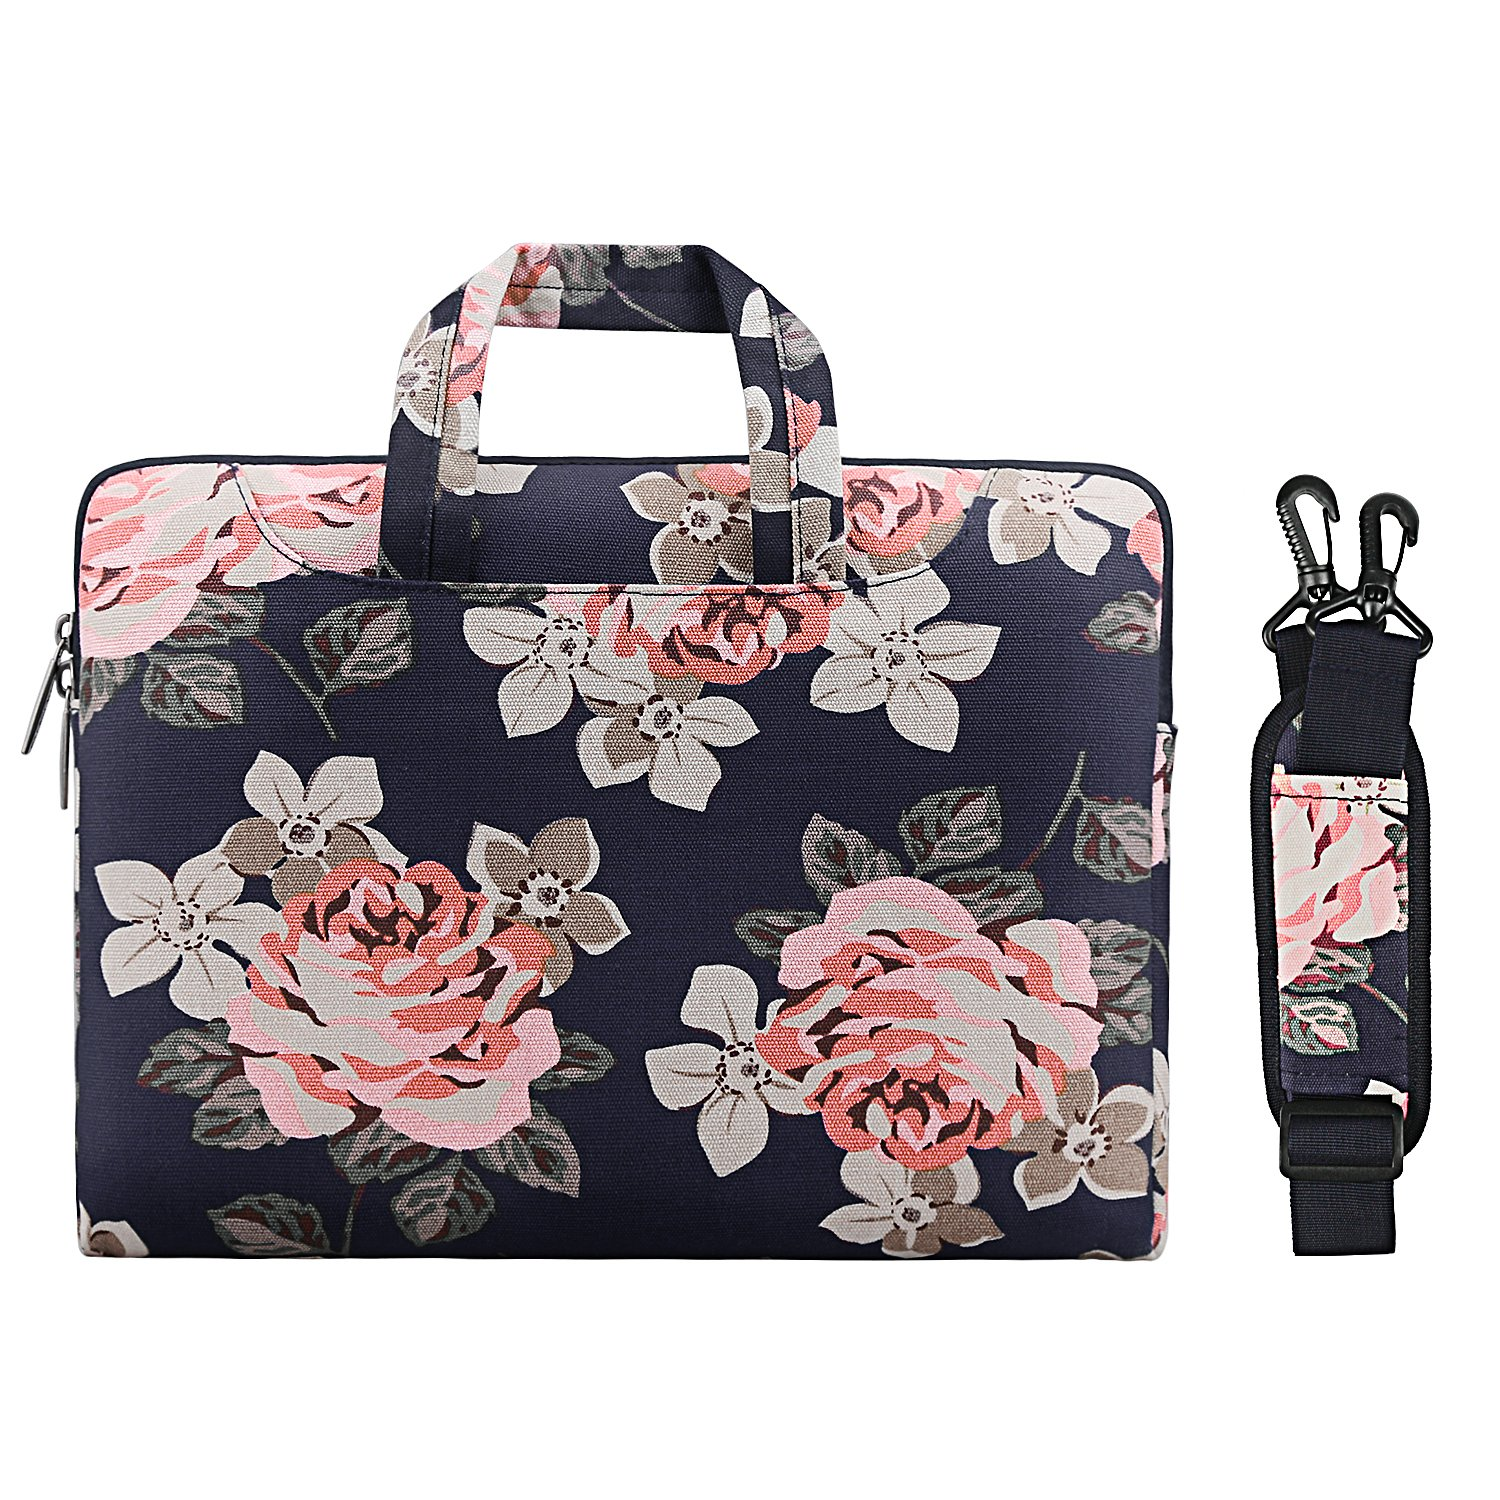 Mosiso Laptop Shoulder Bag for 13-13.3 inch MacBook Pro, MacBook Air, Surface Book, Notebook Computer, Canvas Rose Pattern Laptop Shoulder Messenger Handbag Case Cover Sleeve, Dark Blue